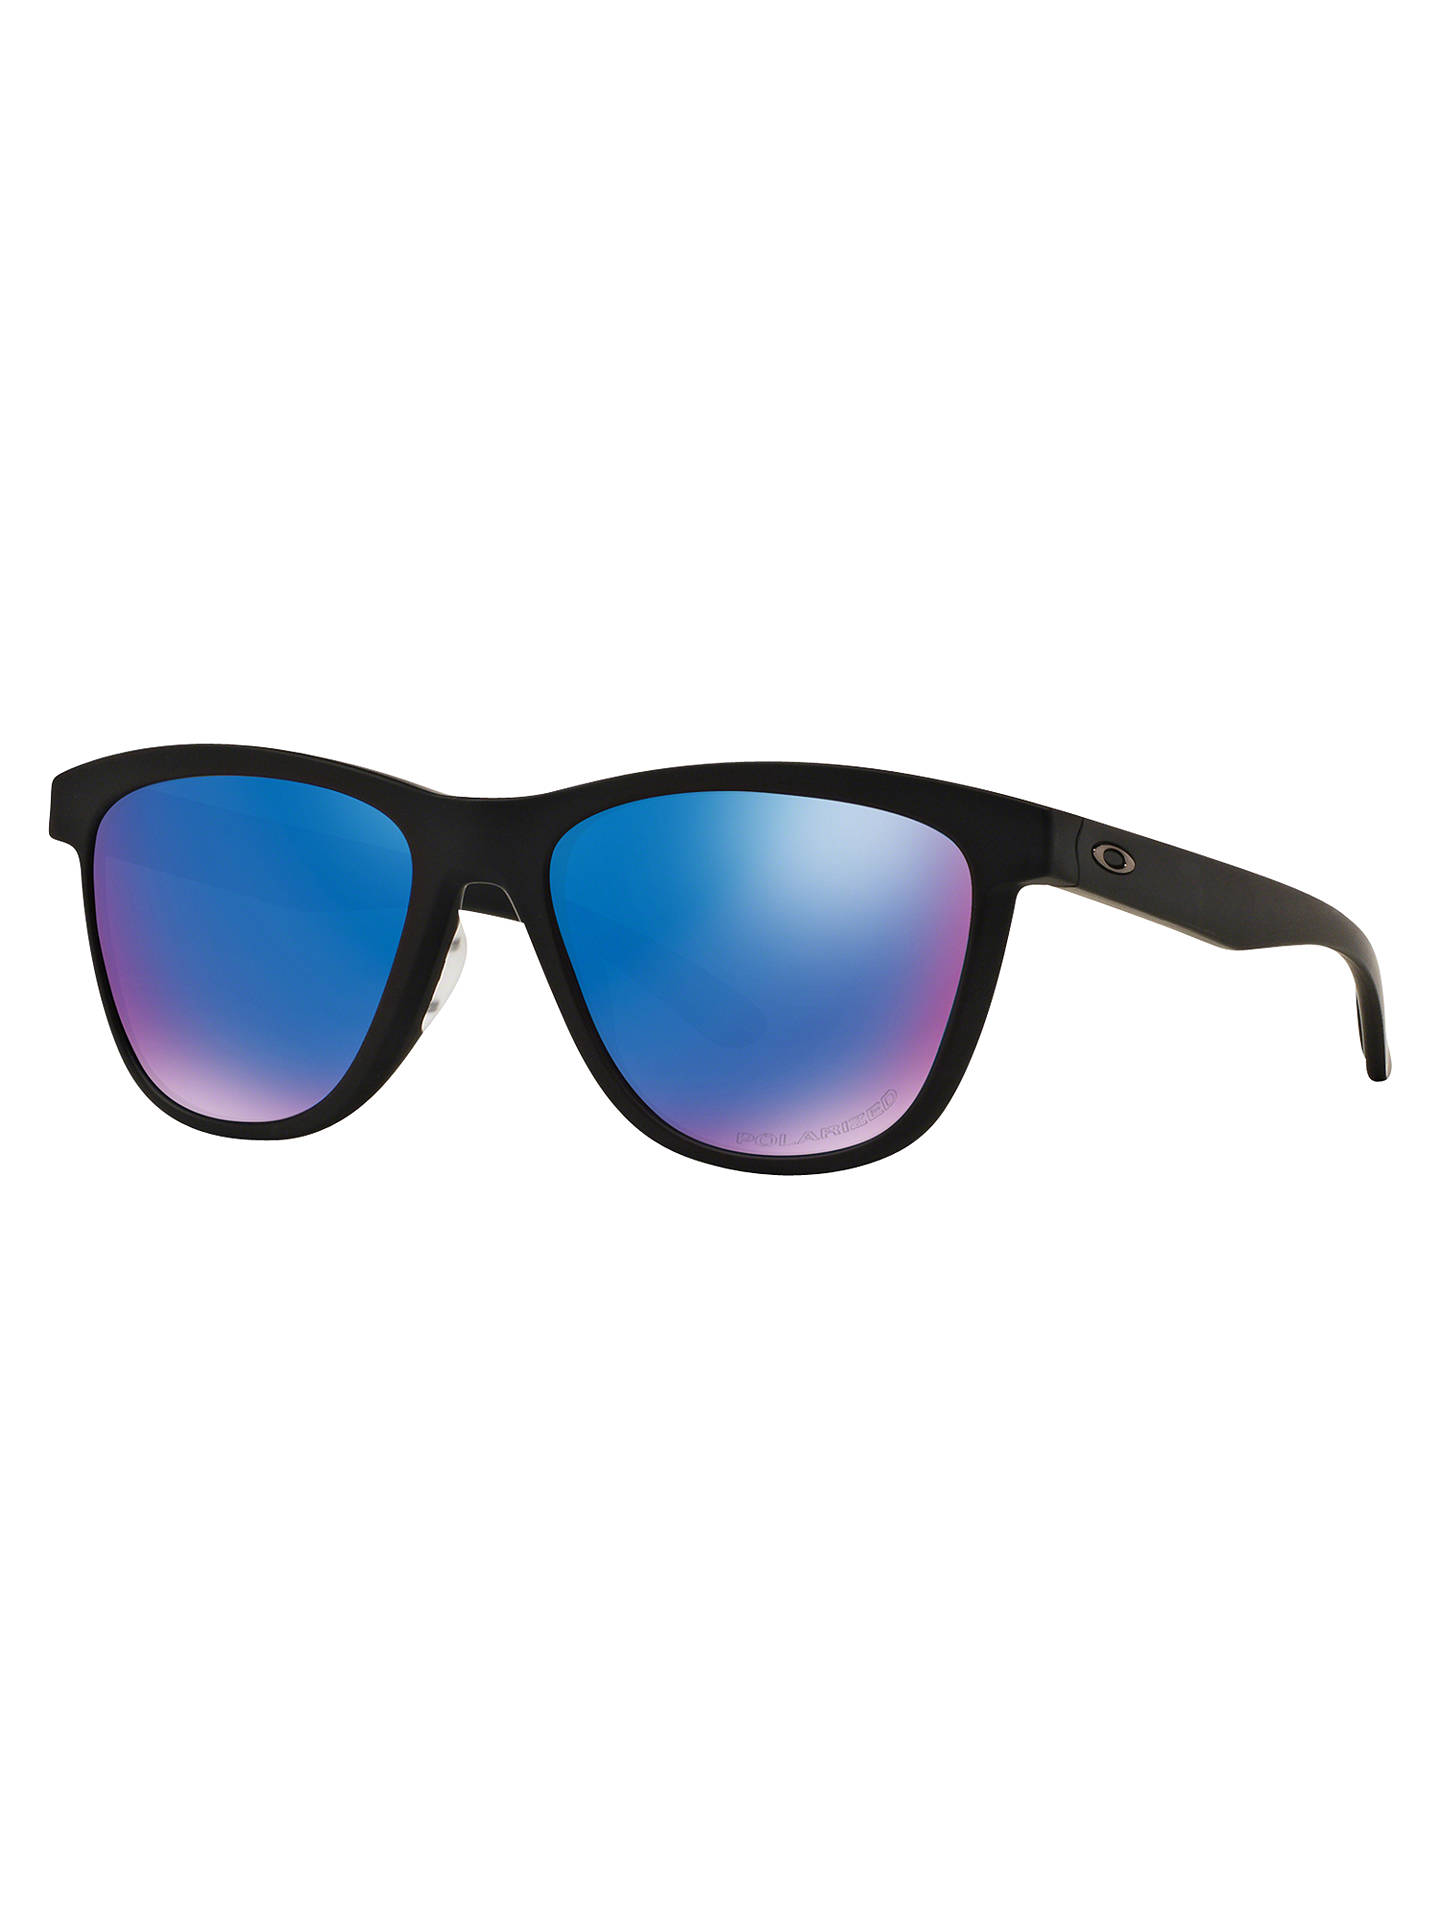 2a3998ae12 Oakley OO9320 Polarised Moonlighter D-Frame Sunglasses at John Lewis ...